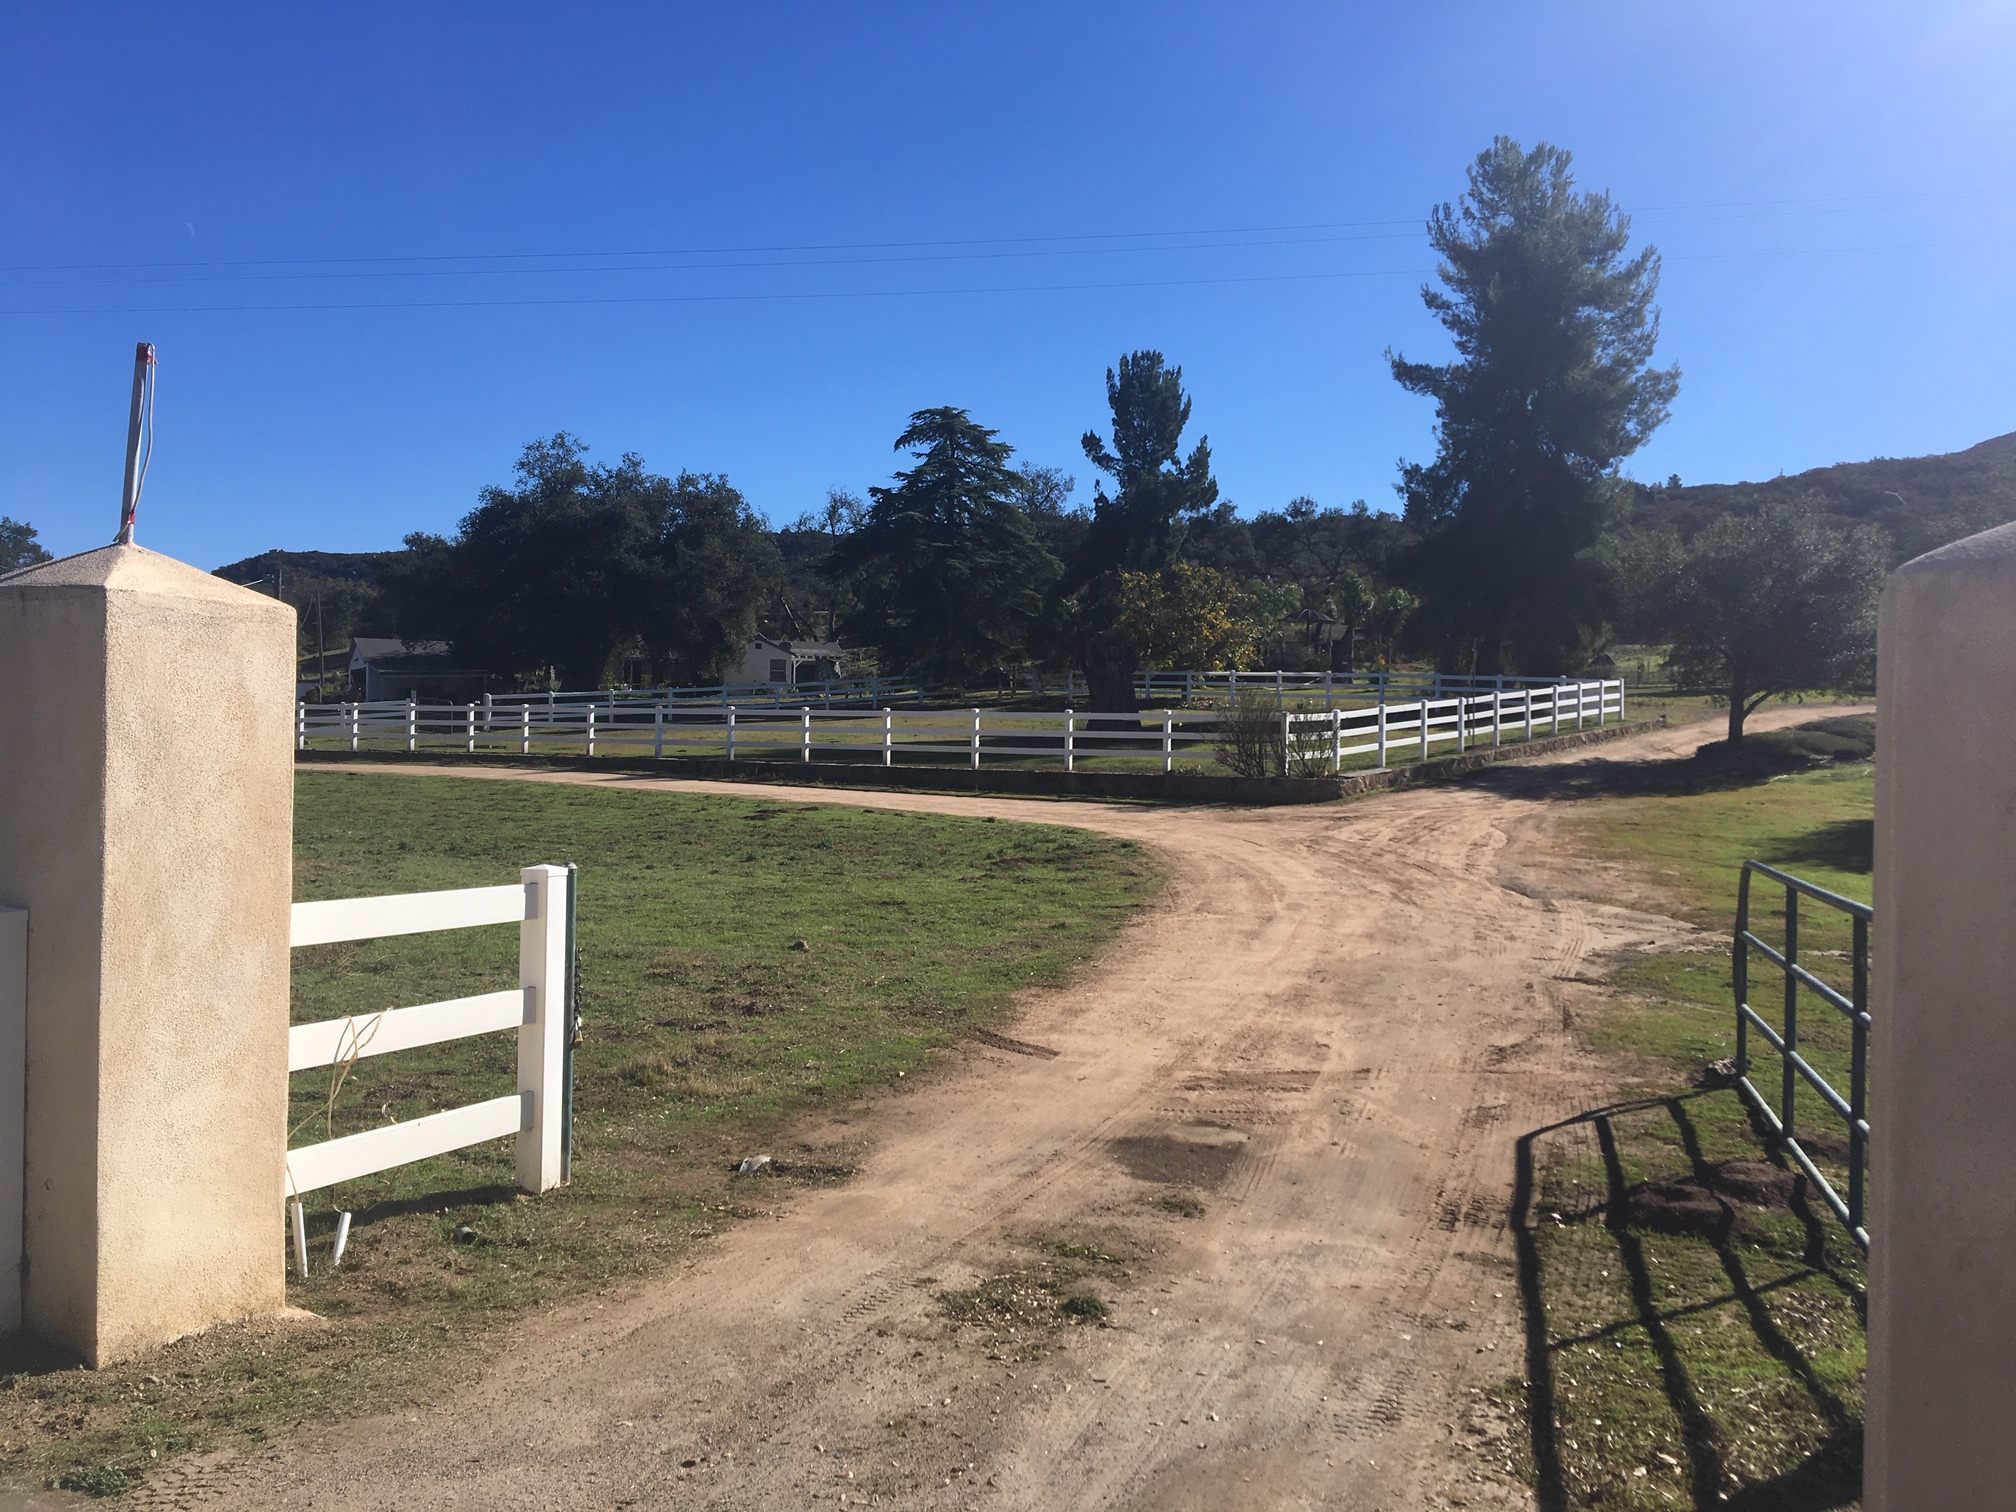 15915 Lawson Valley, Jamul   $1,200,000  2 beds 2 full baths | 1,050 sqft | 21 acre lot | Built in  1958 | SFR